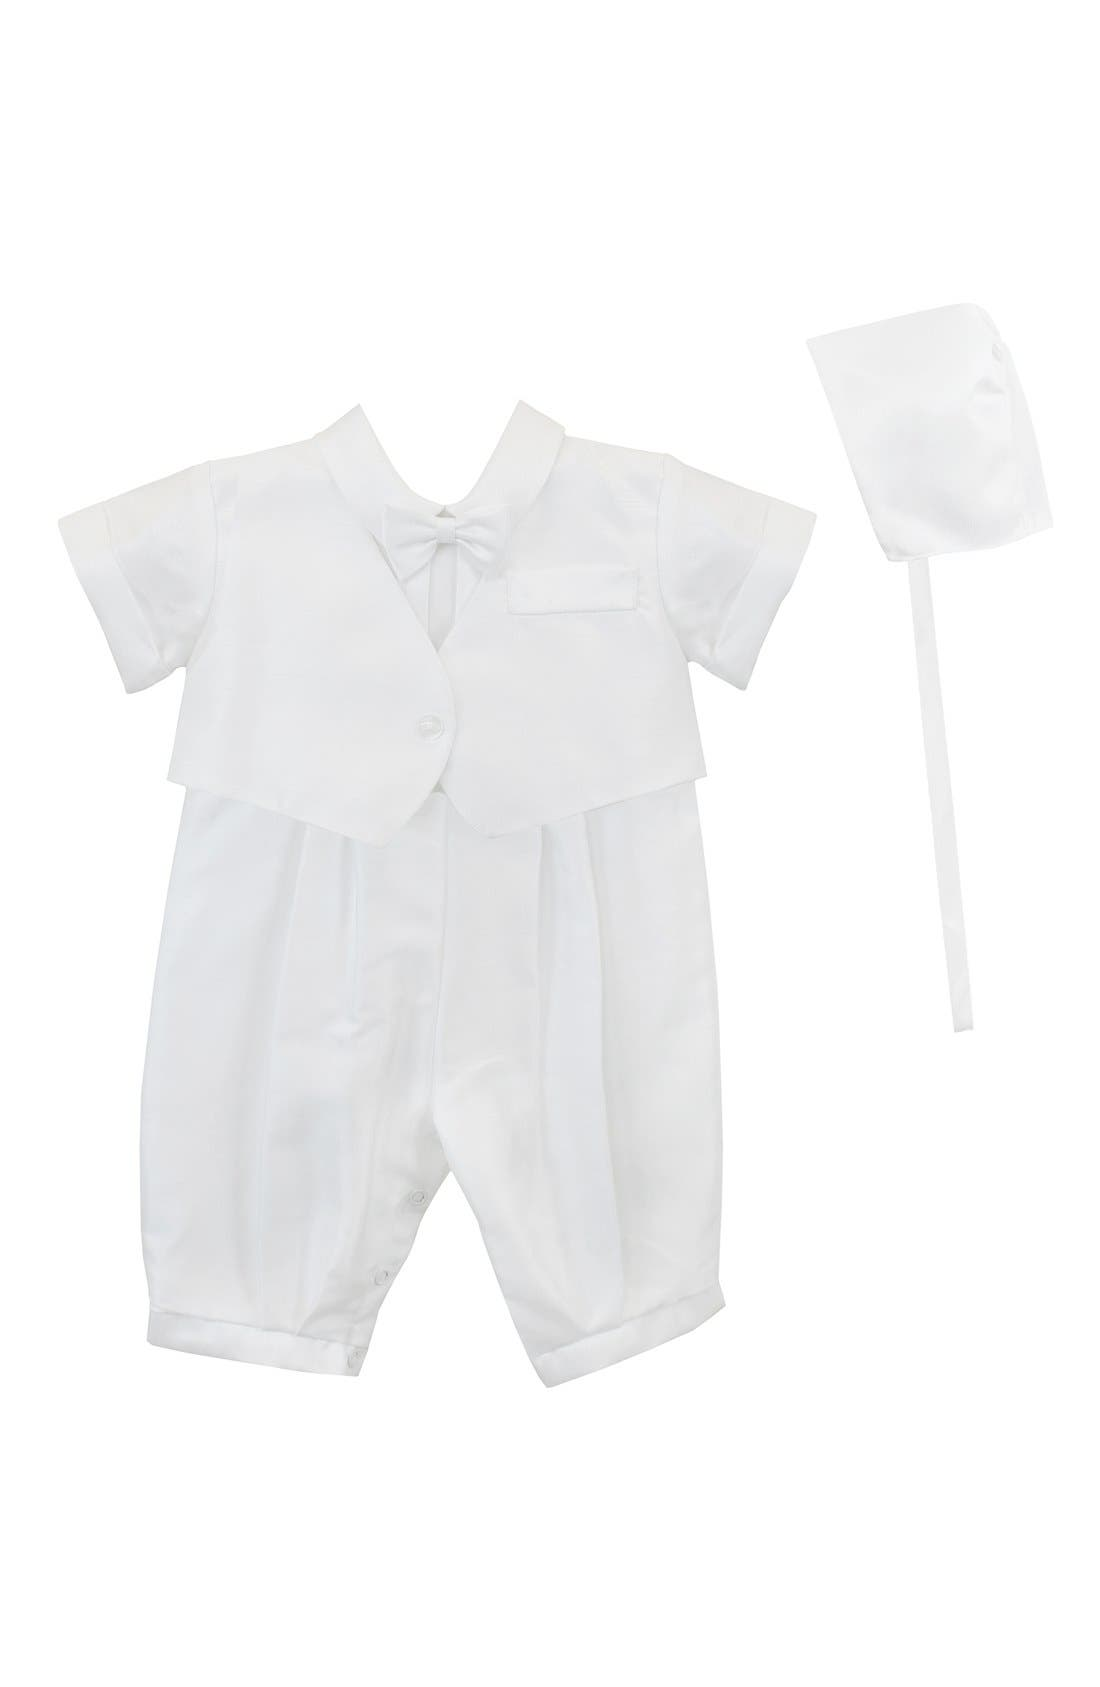 Alternate Image 1 Selected - C.I. Castro & Co. Christening Romper & Cap (Baby Boys)